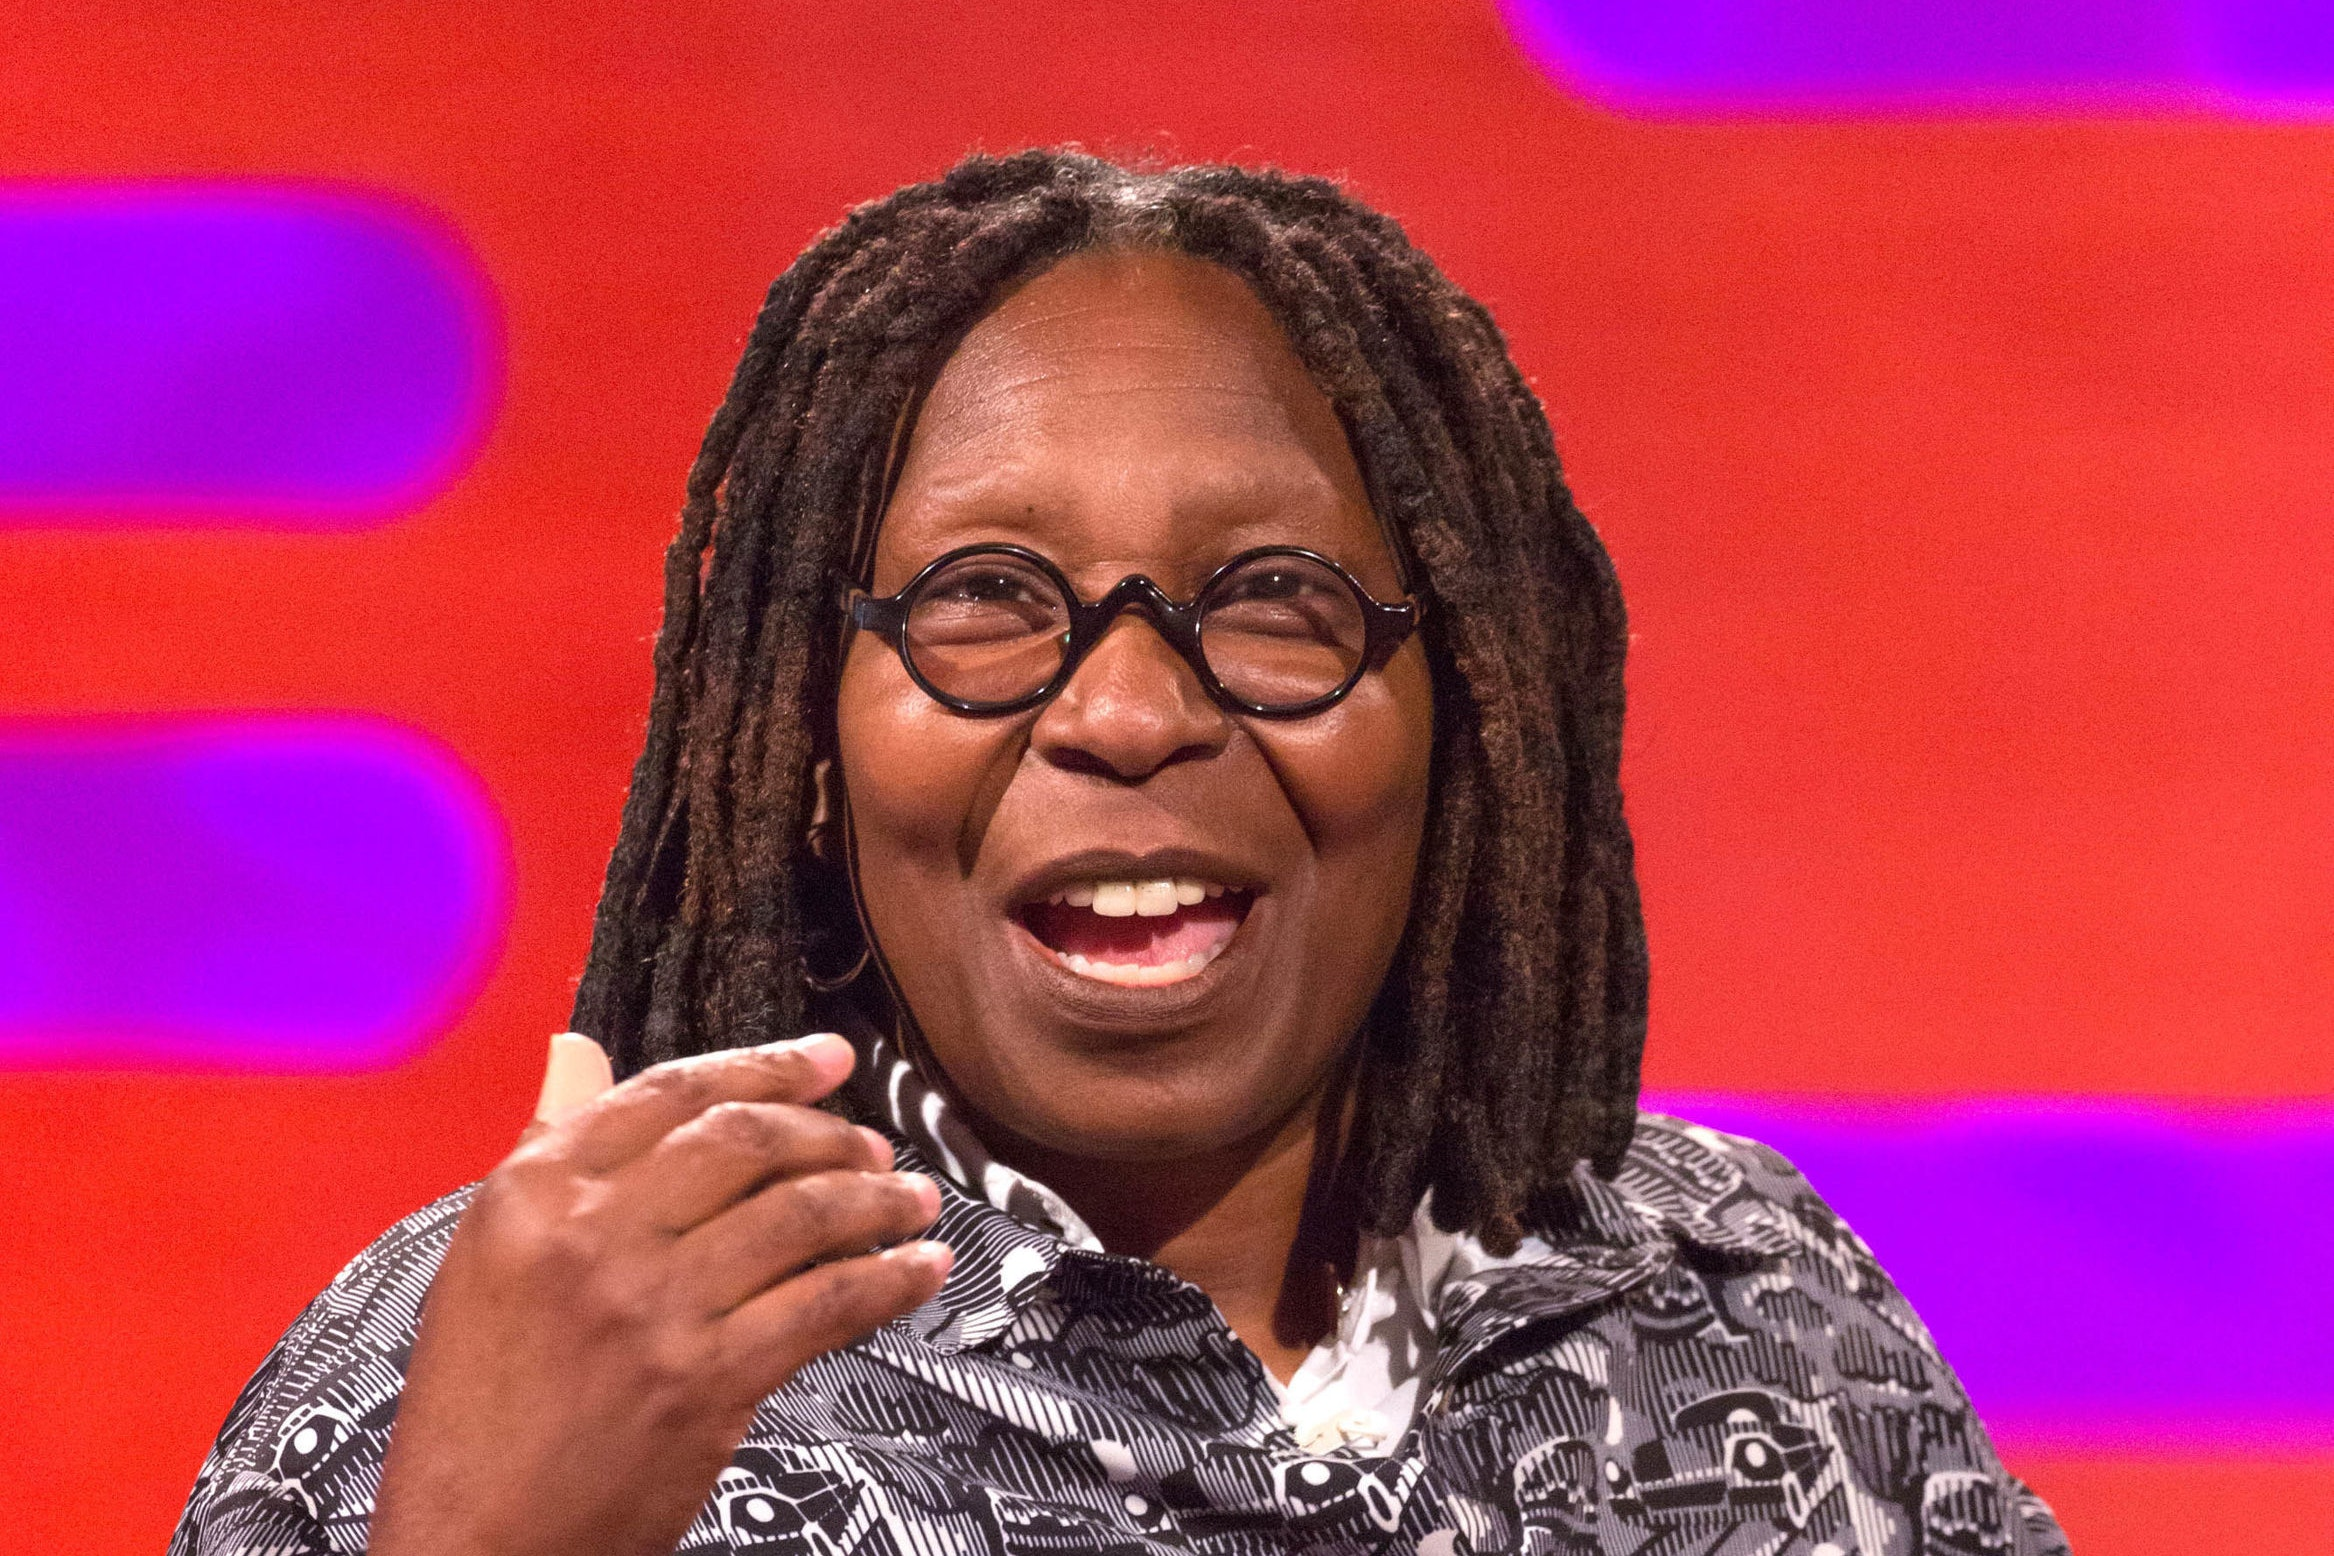 Whoopi Goldberg said she plans to gradually return to her TV show